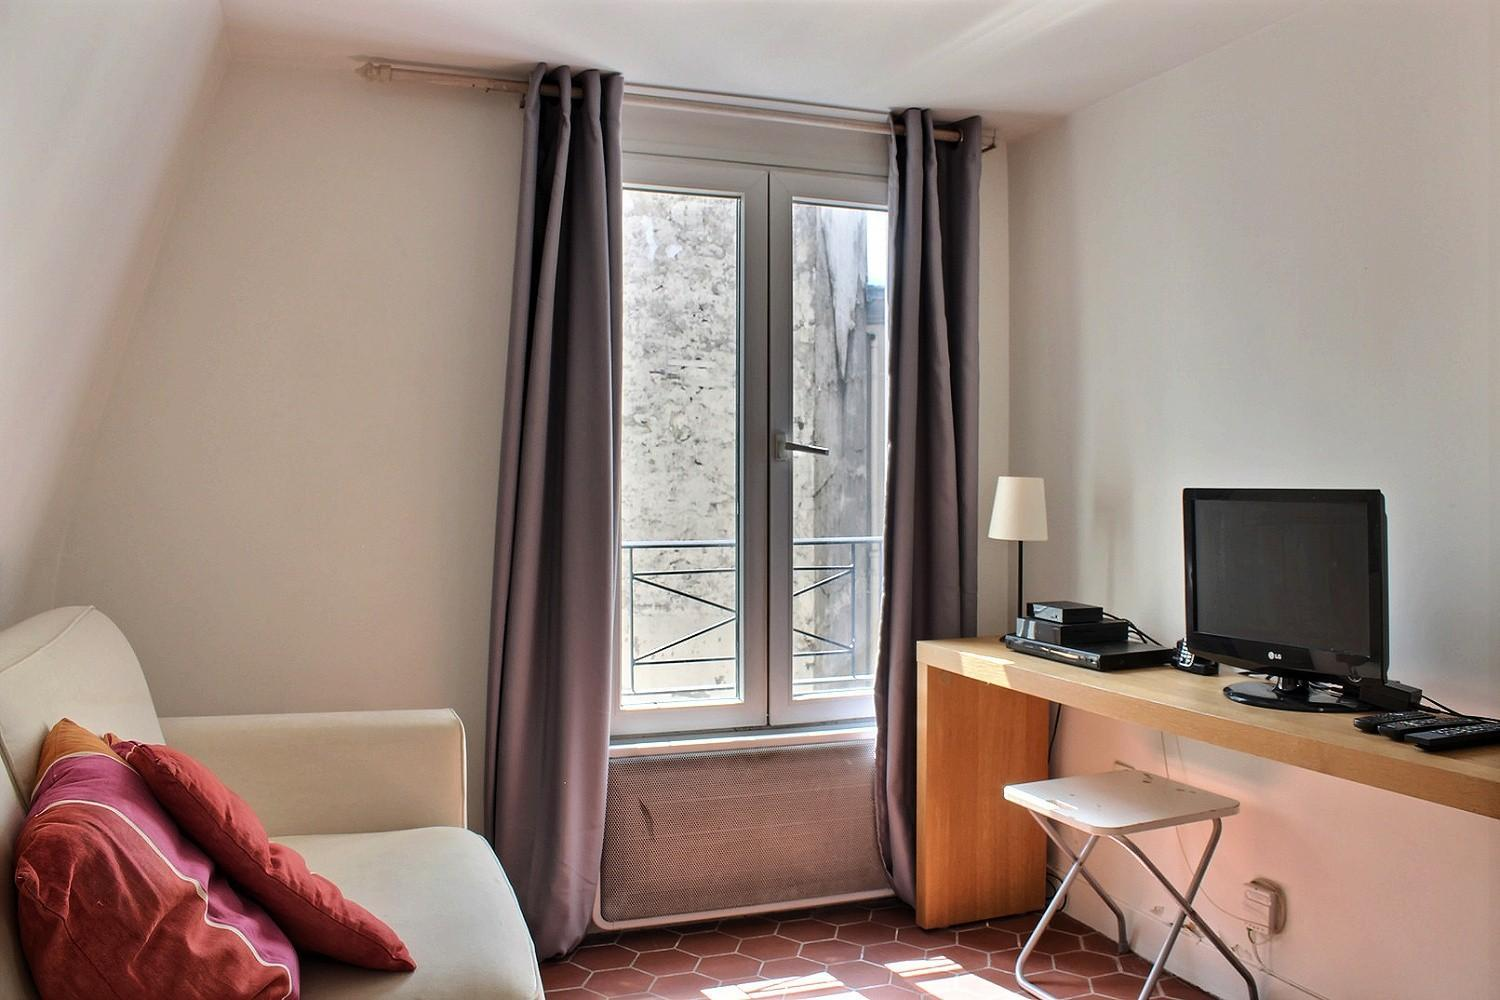 S02098 - Modern studio for 2 people near Les Halles